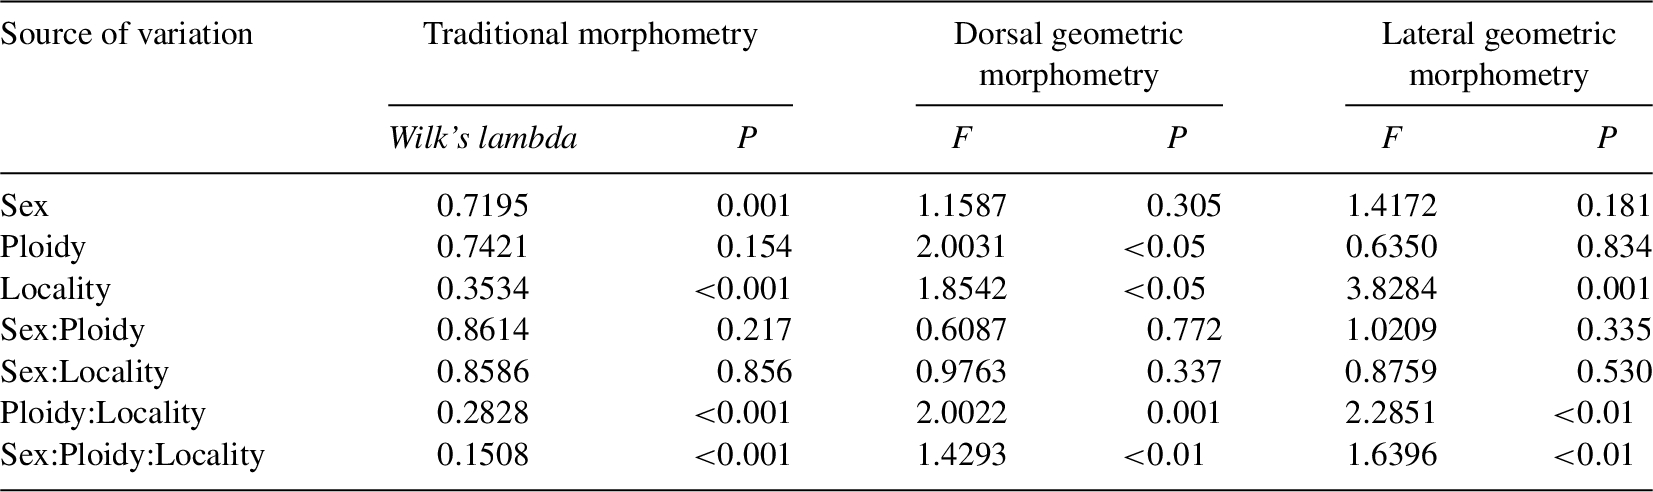 Relationships of the morphological variation in diploids